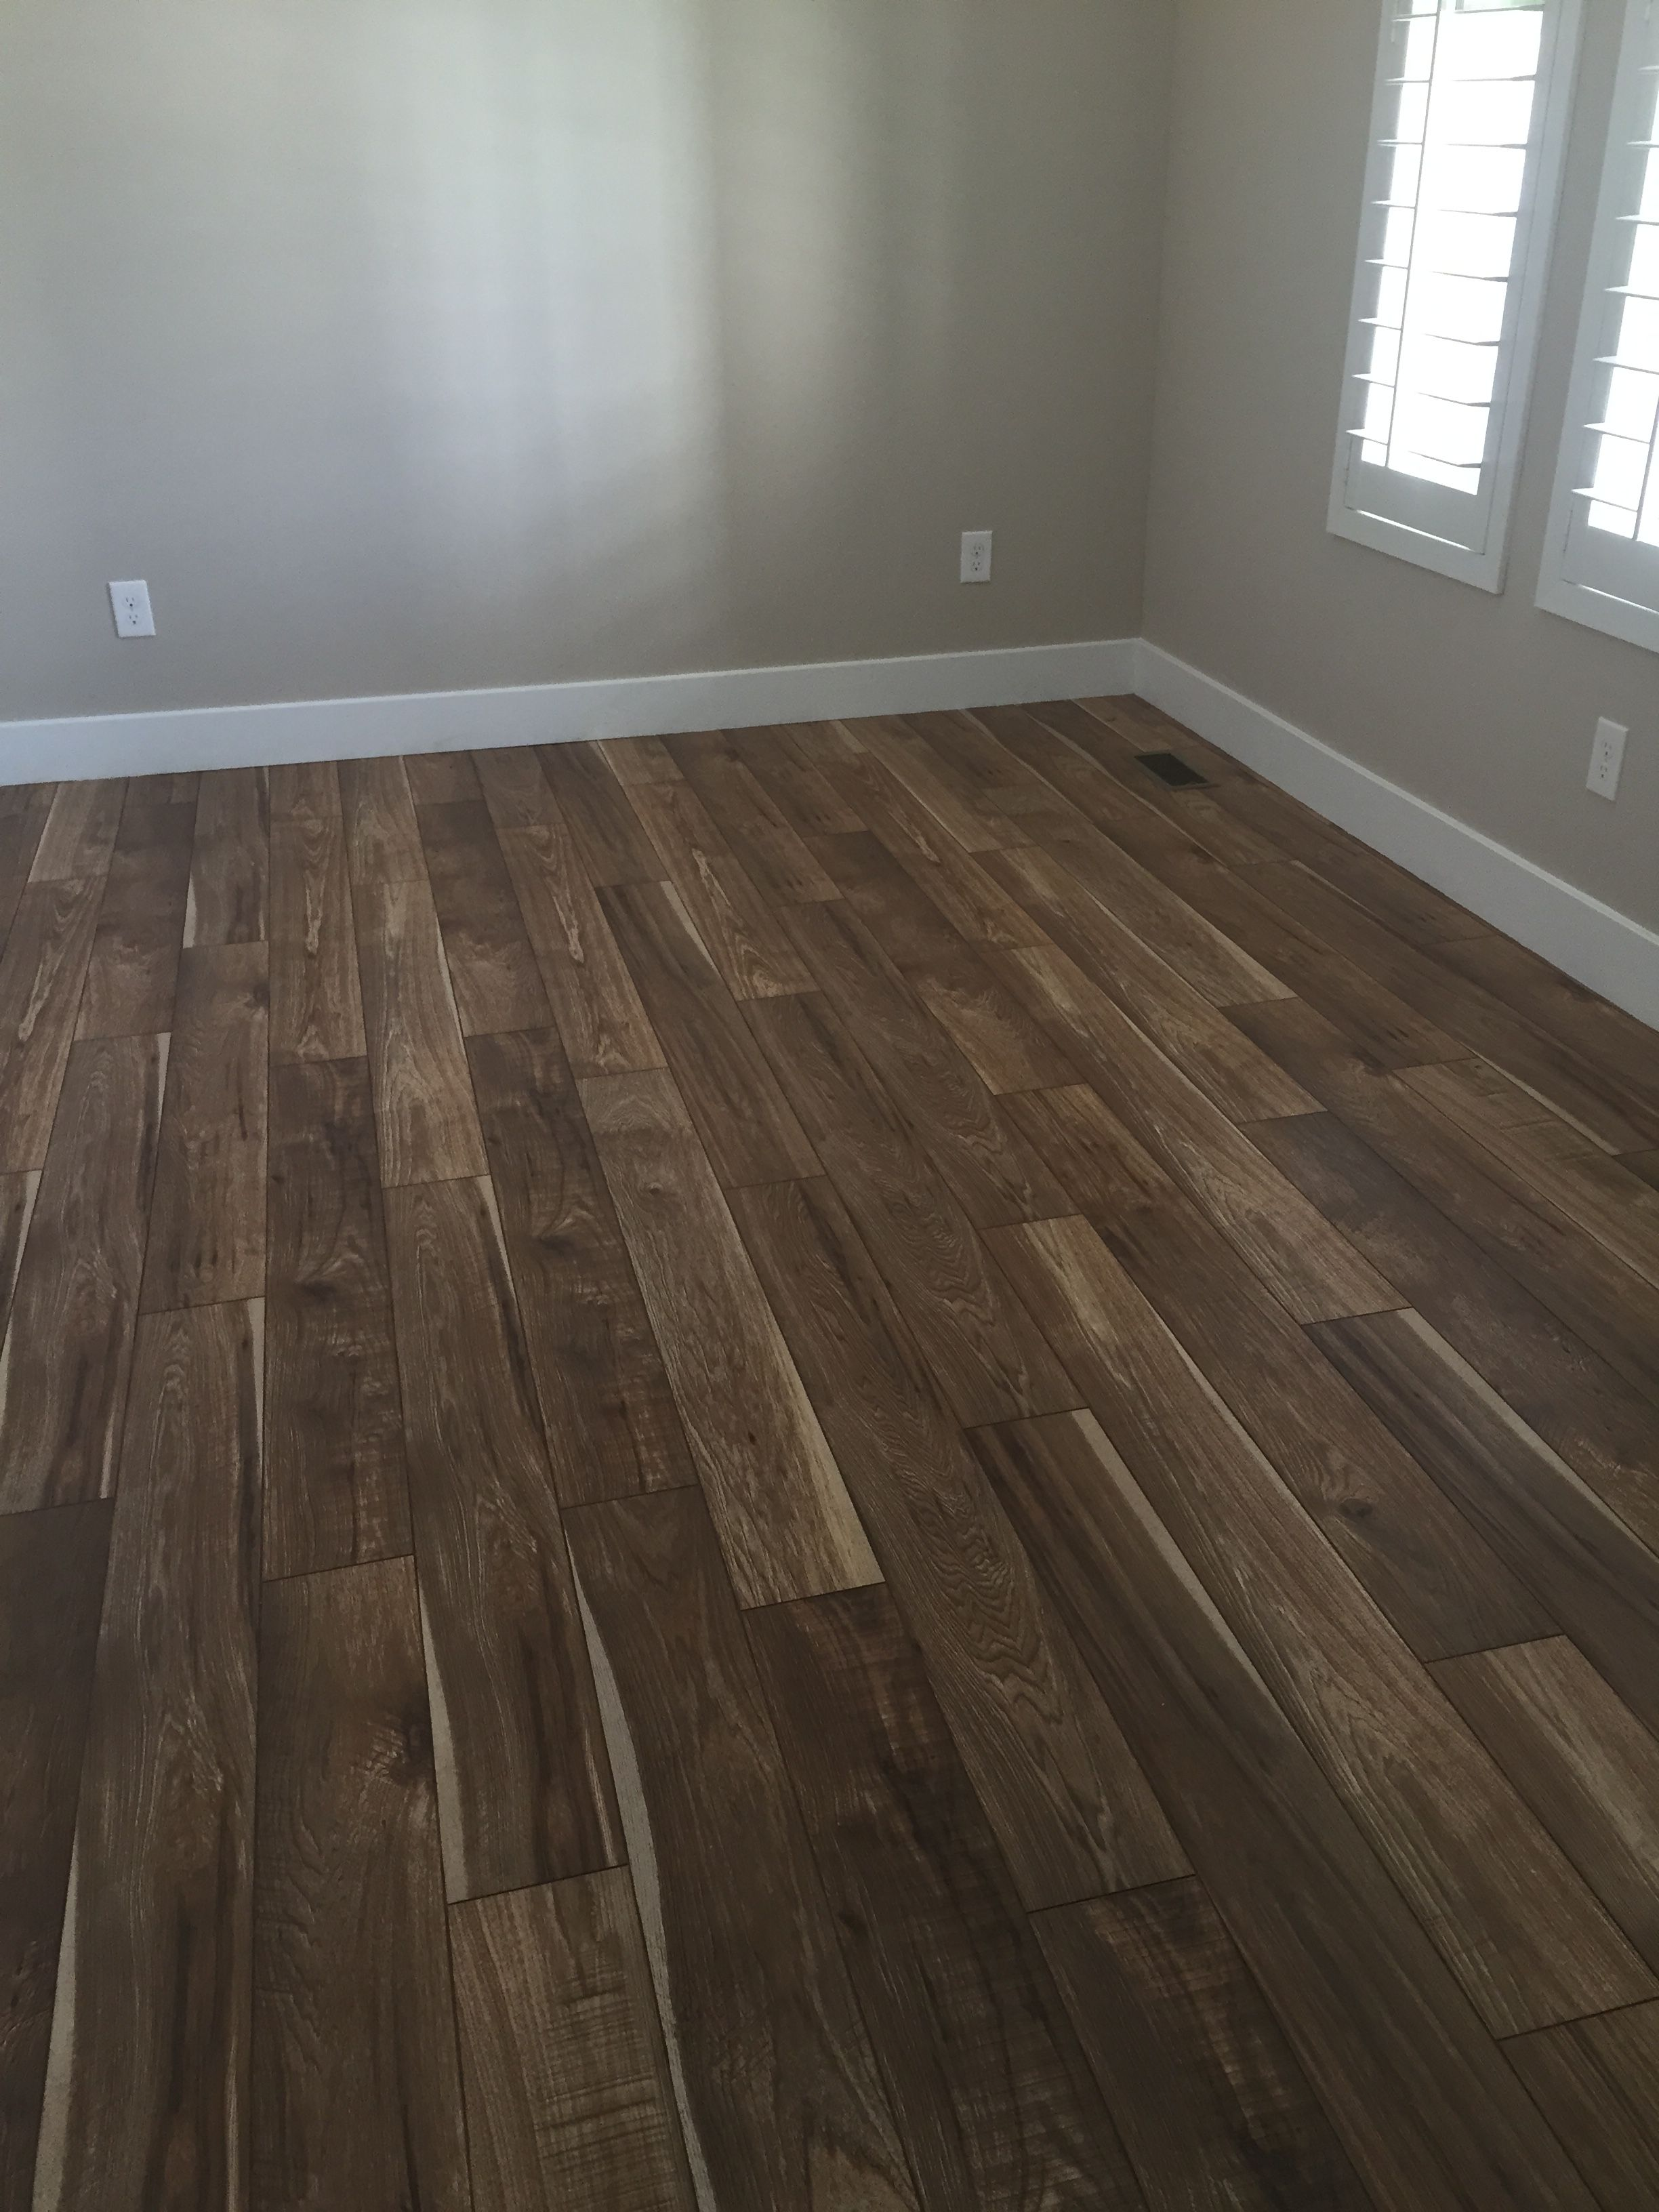 Real Hand Sawn Hickory Hardwood Flooring Nope Just Mannington S Sawmill Hickory From The Restora Hickory Hardwood Floors Flooring Inspiration Hardwood Floors